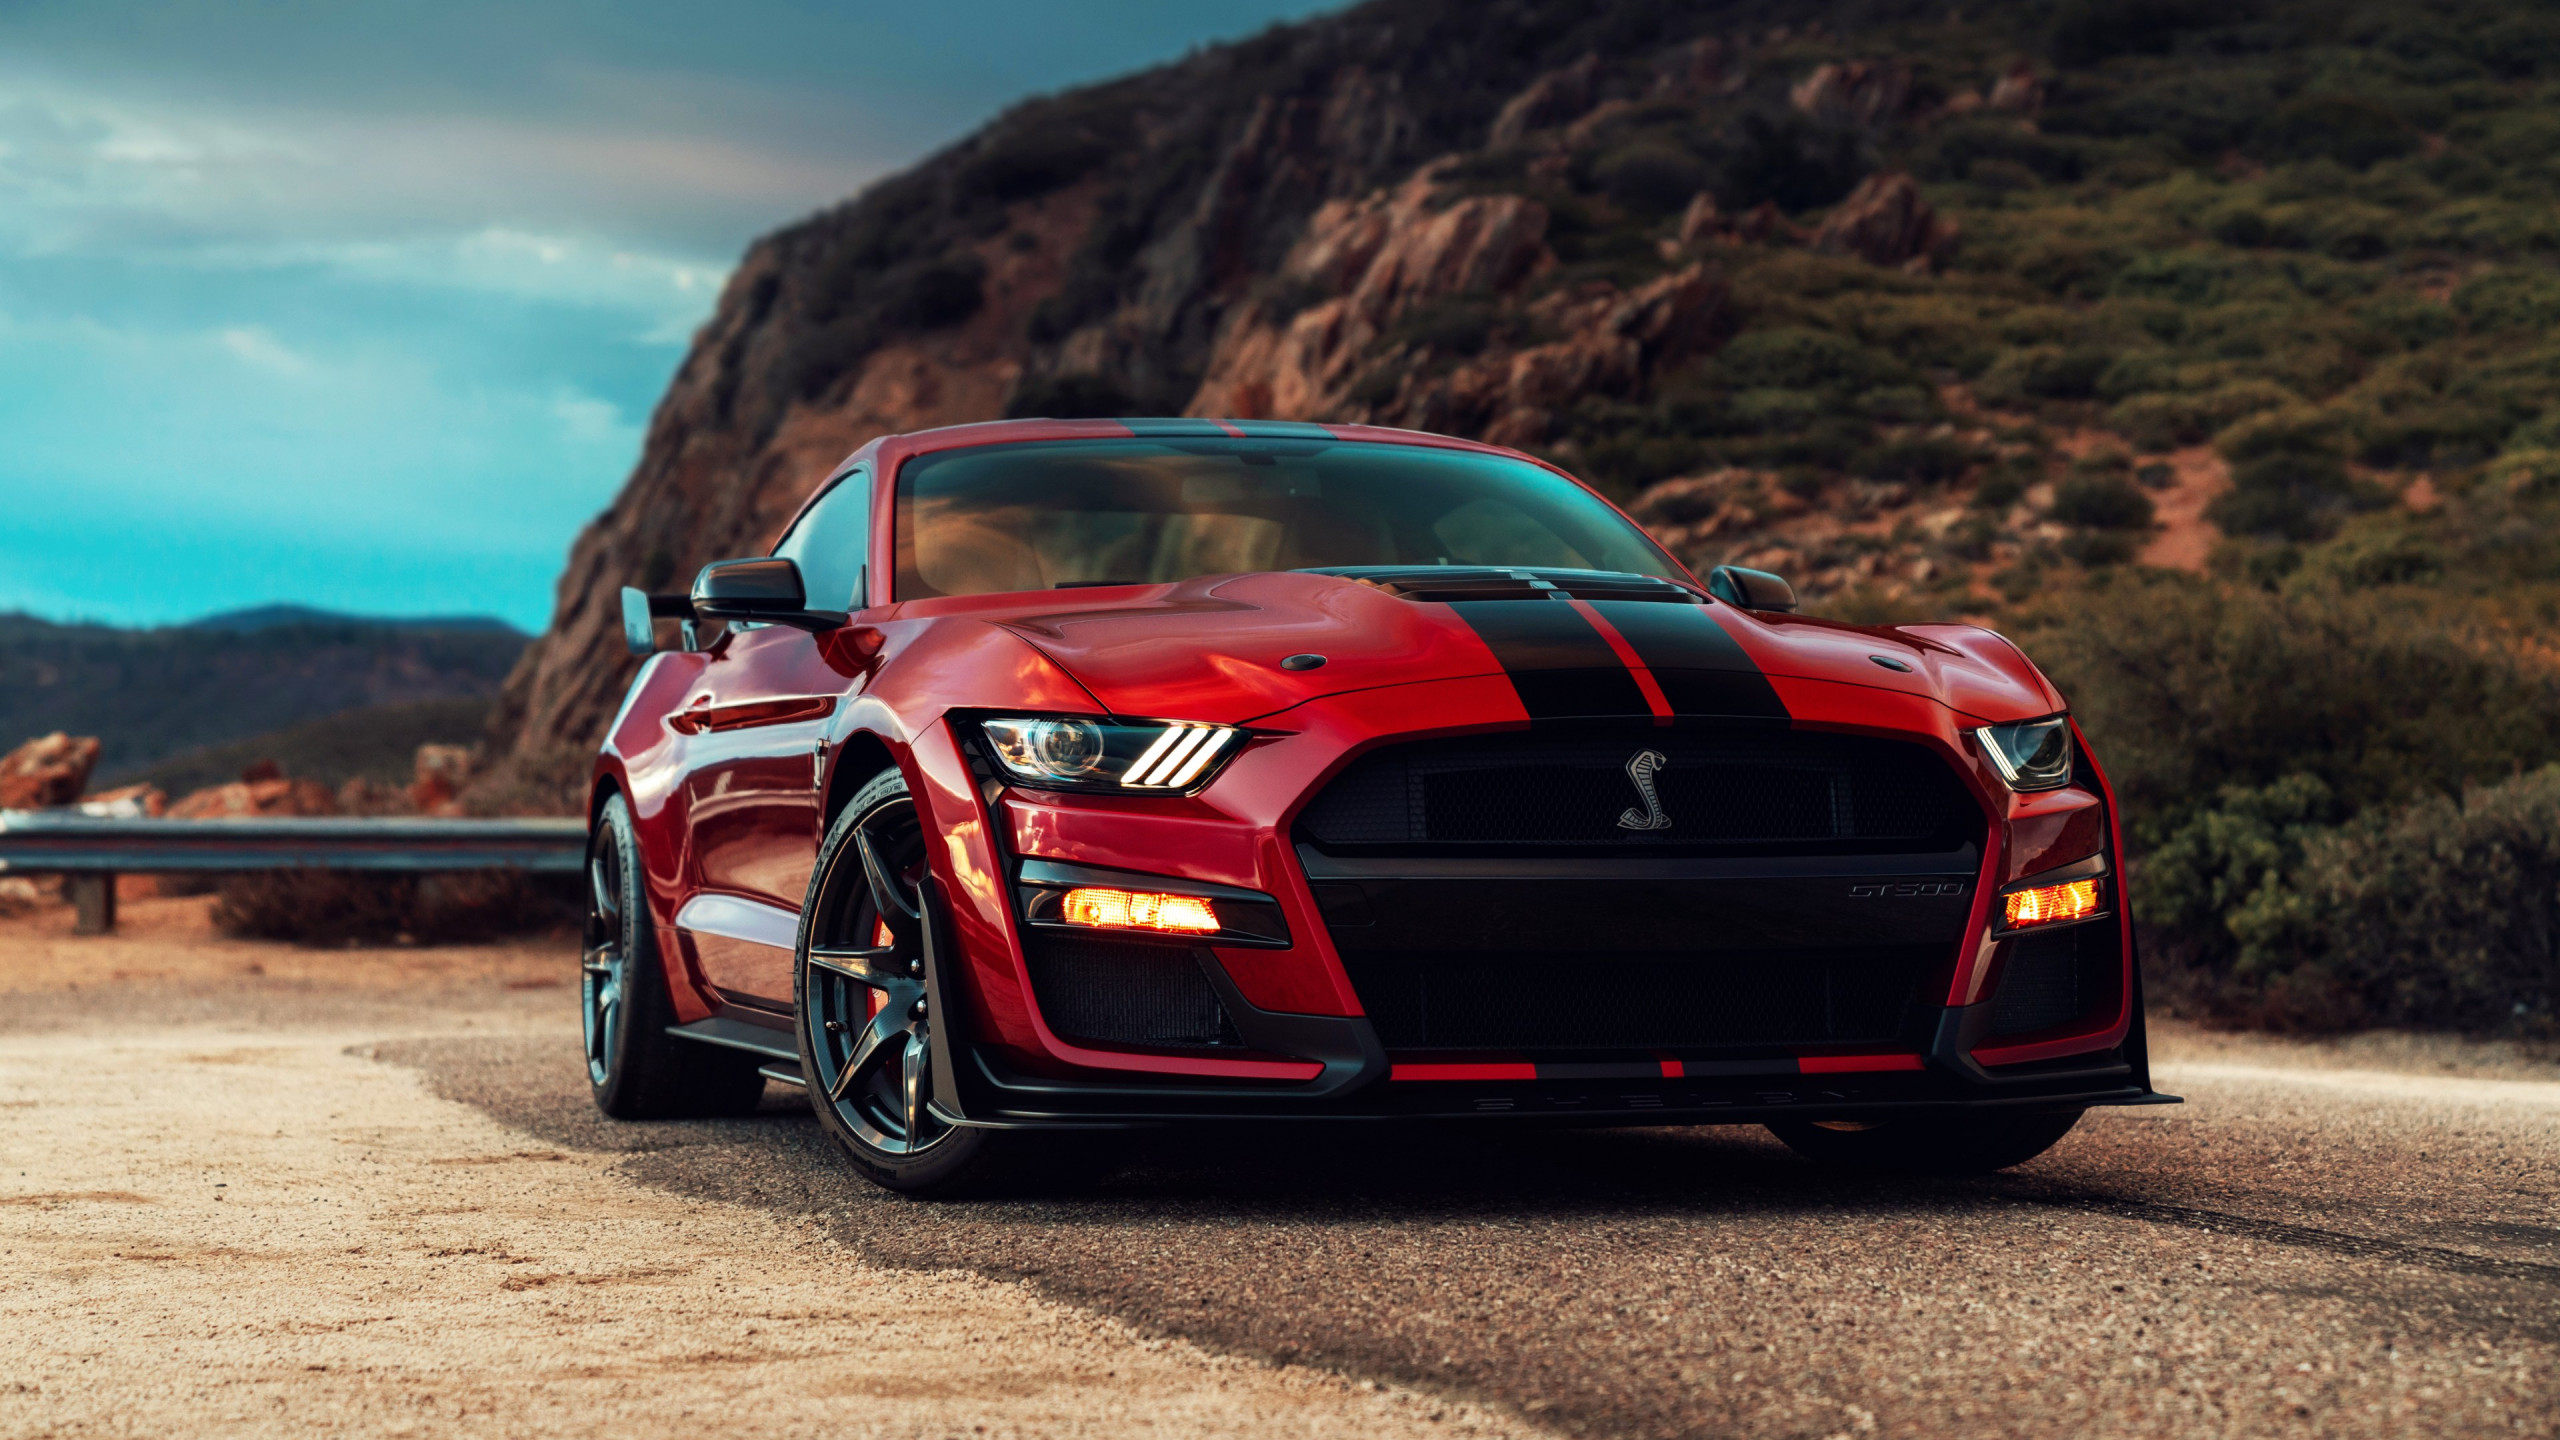 Ford Mustang Shelby GT500 wallpaper 2560x1440